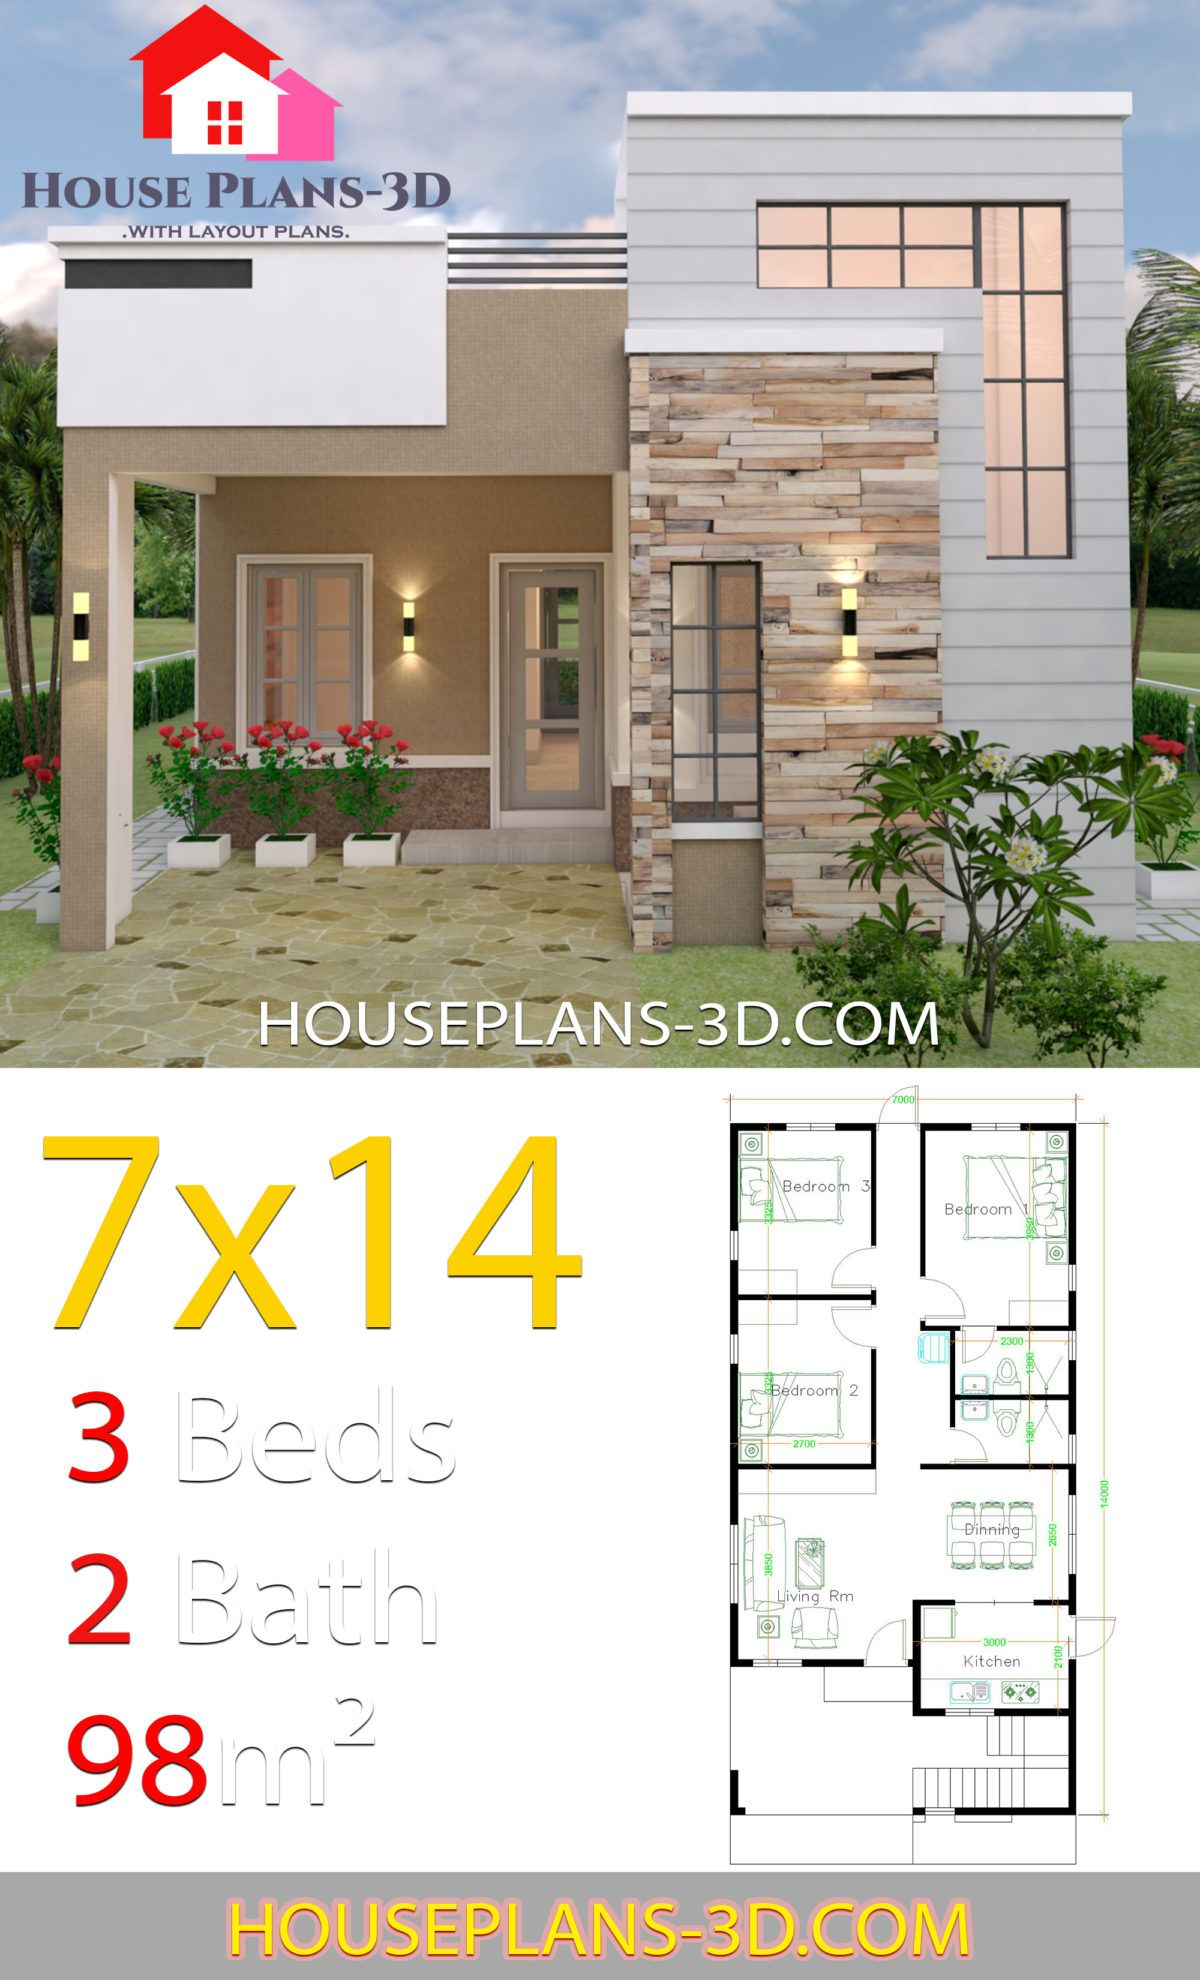 House Design 7x14 With 3 Bedrooms Terrace Roof House Plans 3d House Front Design House Design Pictures Small House Design Plans